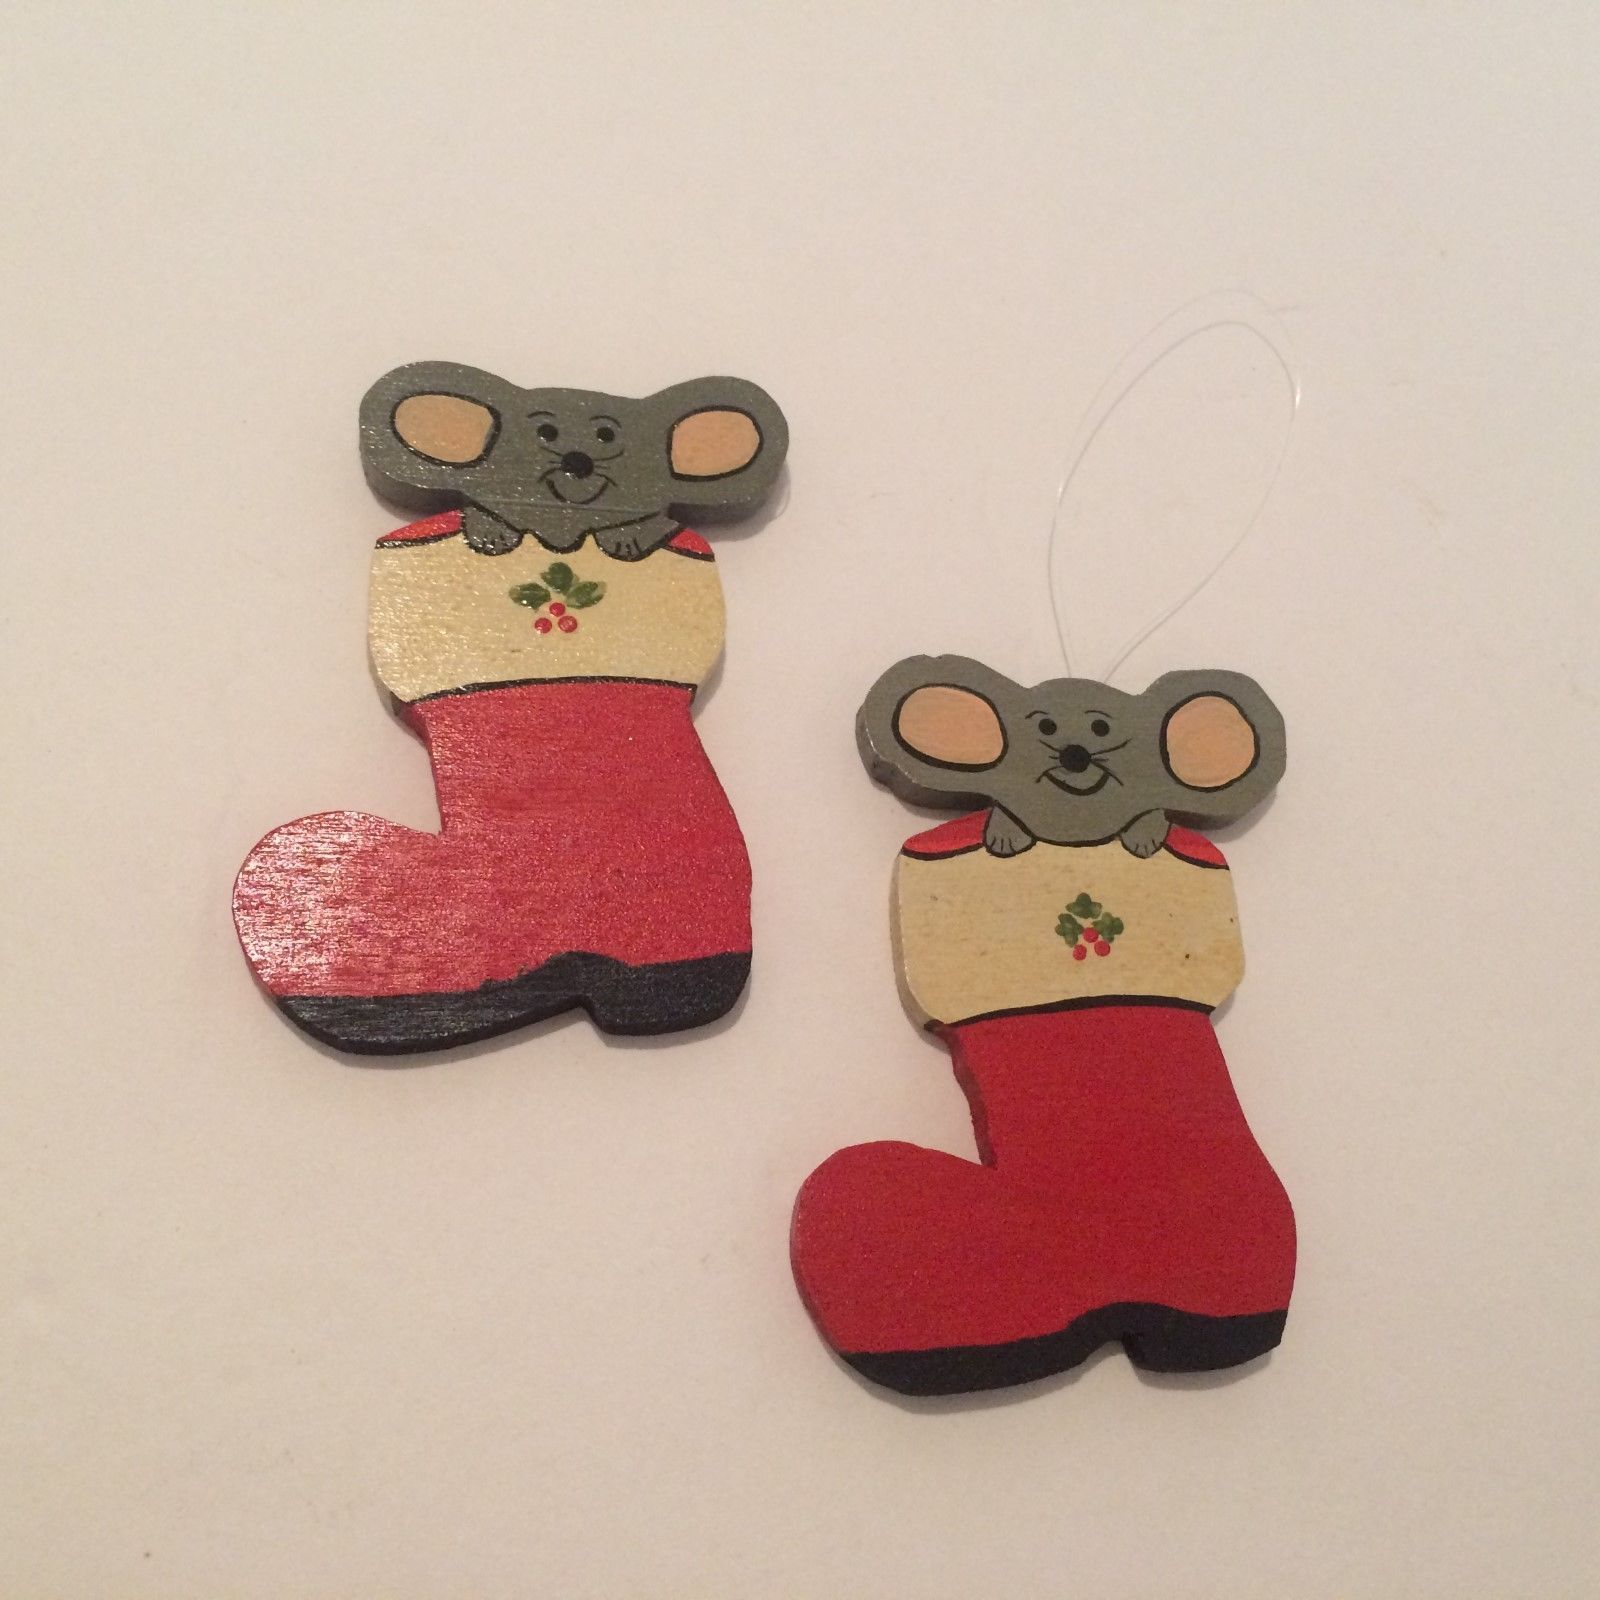 Christmas Tree Ornaments Mouse in Stocking Handmade Wood Decor 1980